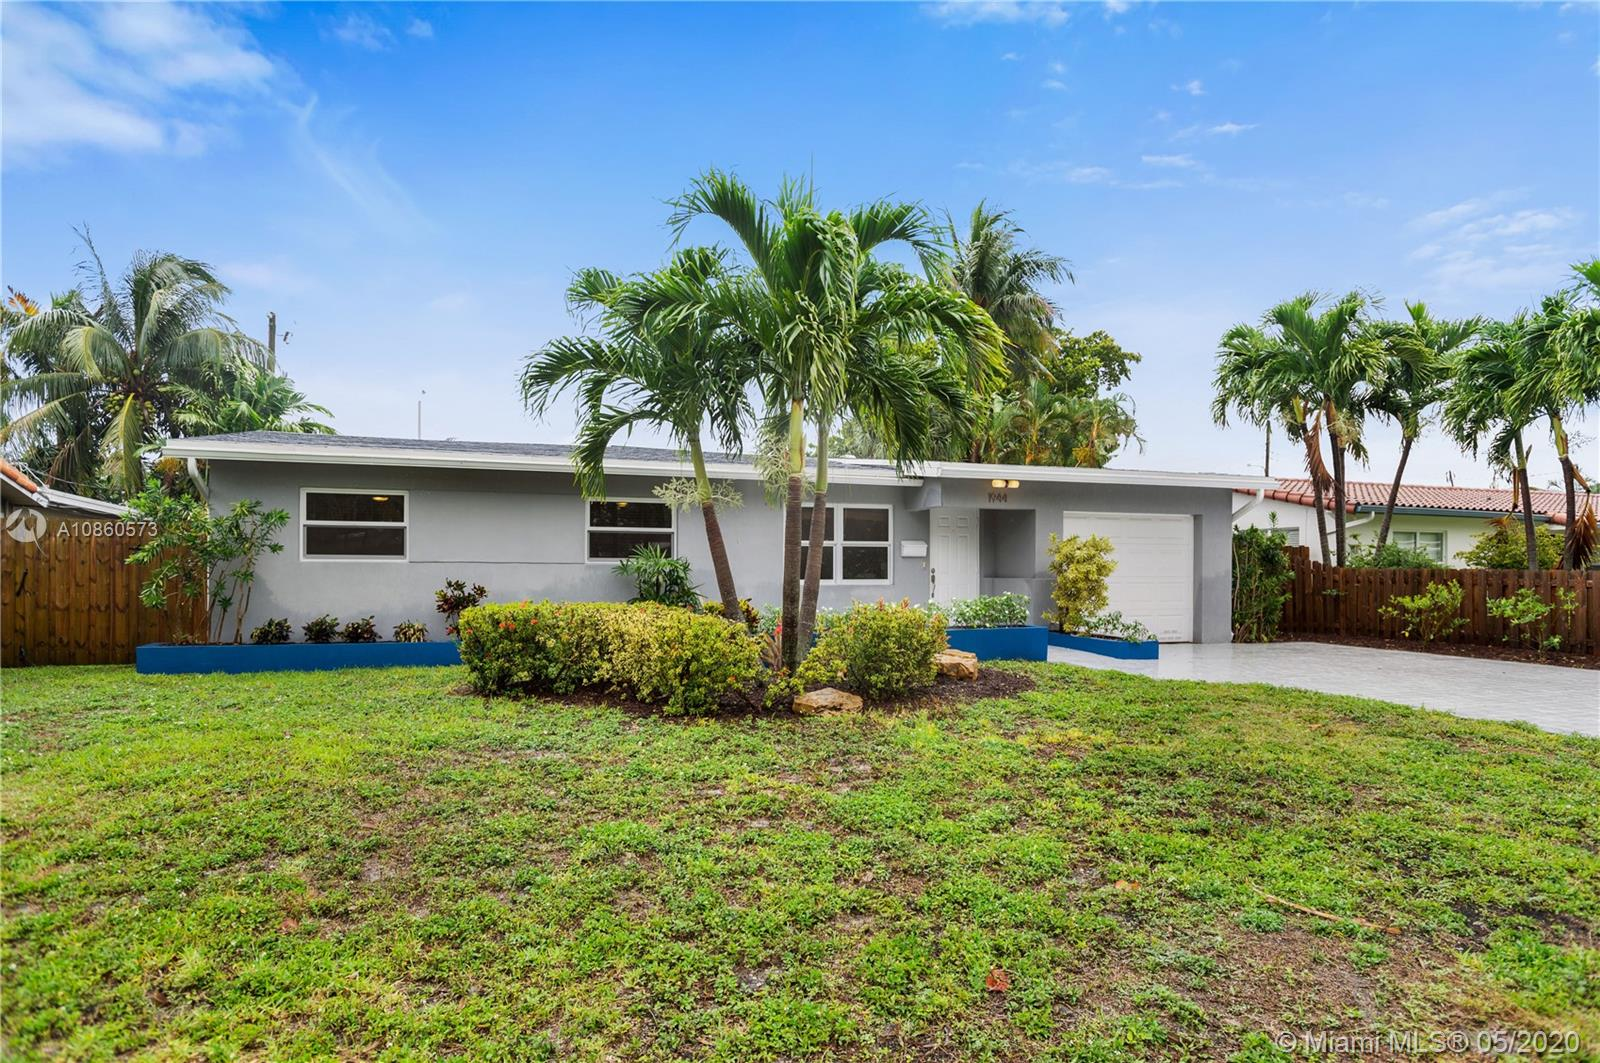 Live in this Dream Home in the Heart of Wilton Manors. This Beautiful Pool Home features 3 Bedrooms and 2 Updated Bathrooms. Large Sparkling Pool was completed in 2016. Roof was replaced in 2017 along with Solar Panels to maximize utility bill savings. New AC in 2019. Great floor plan with Spacious Living Room, Expansive Updated Kitchen and Dining Room leading out to the Beautiful Generous Garden. Large laundry Room with tons of storage plus an attached Garage. Enjoy Wilton Manors Drive with all the Dining and Entertainment at your doorstep.